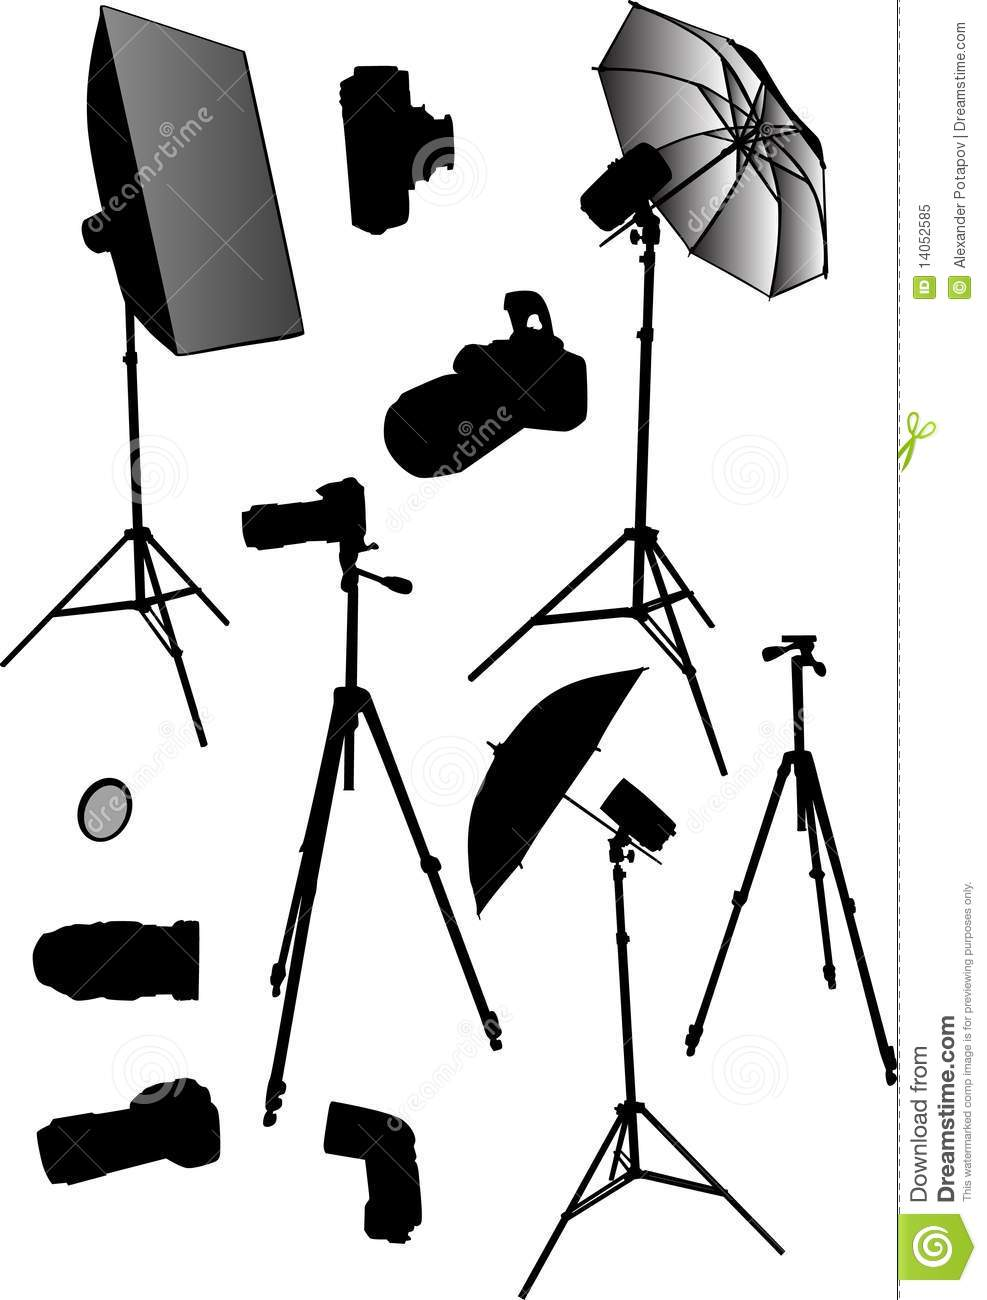 Photography Supplies Clip Art